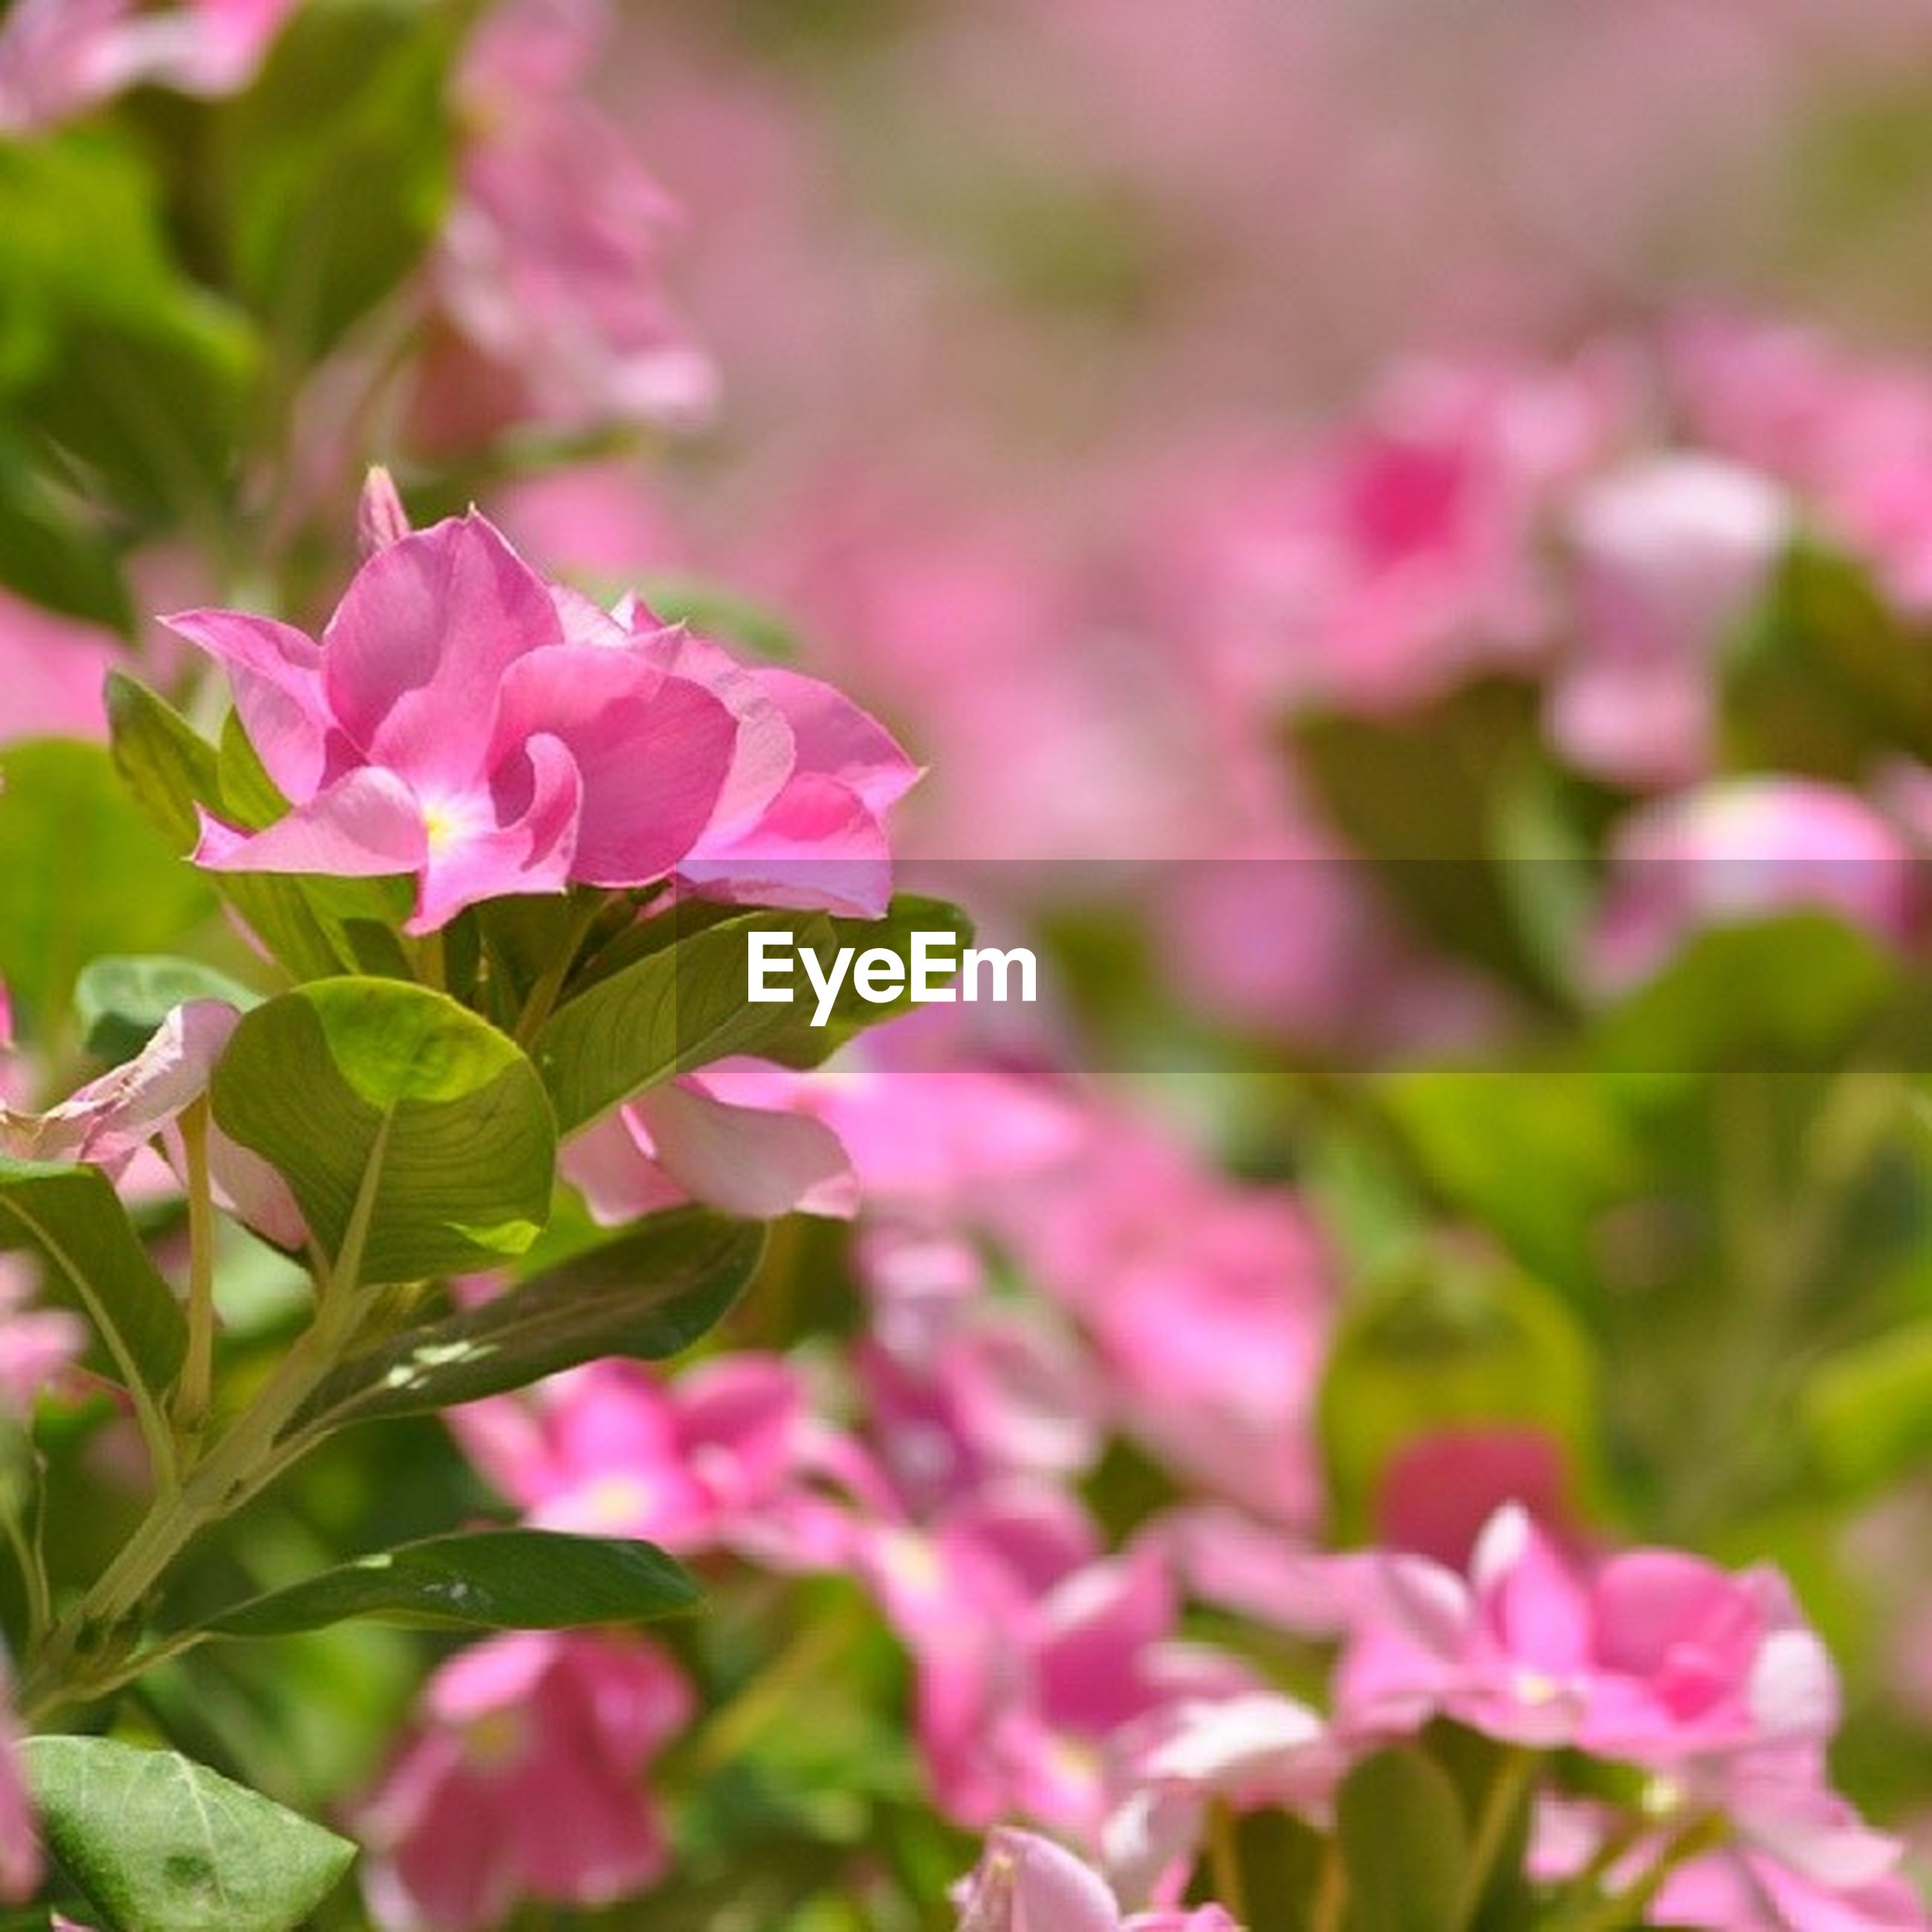 flower, freshness, petal, fragility, pink color, growth, beauty in nature, flower head, focus on foreground, close-up, nature, blooming, plant, selective focus, in bloom, pink, park - man made space, day, outdoors, bud